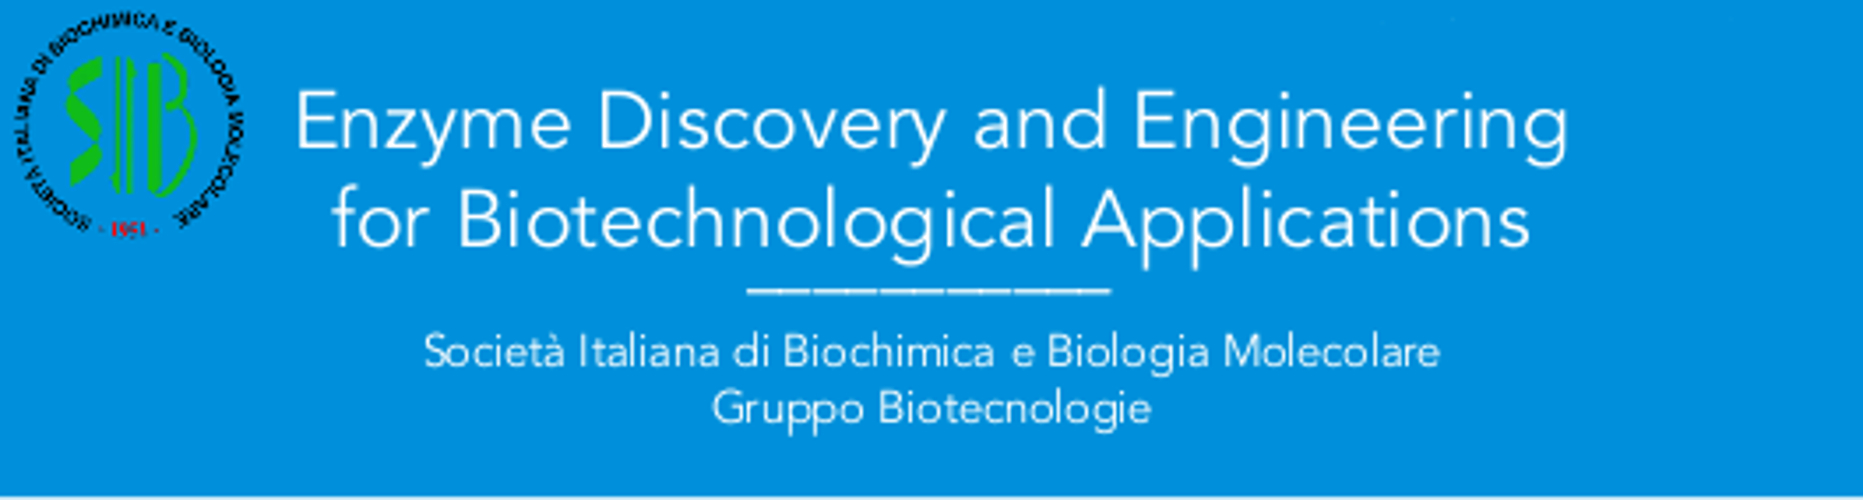 School of Enzyme Discovery and Engineering for Biotechnological Applications